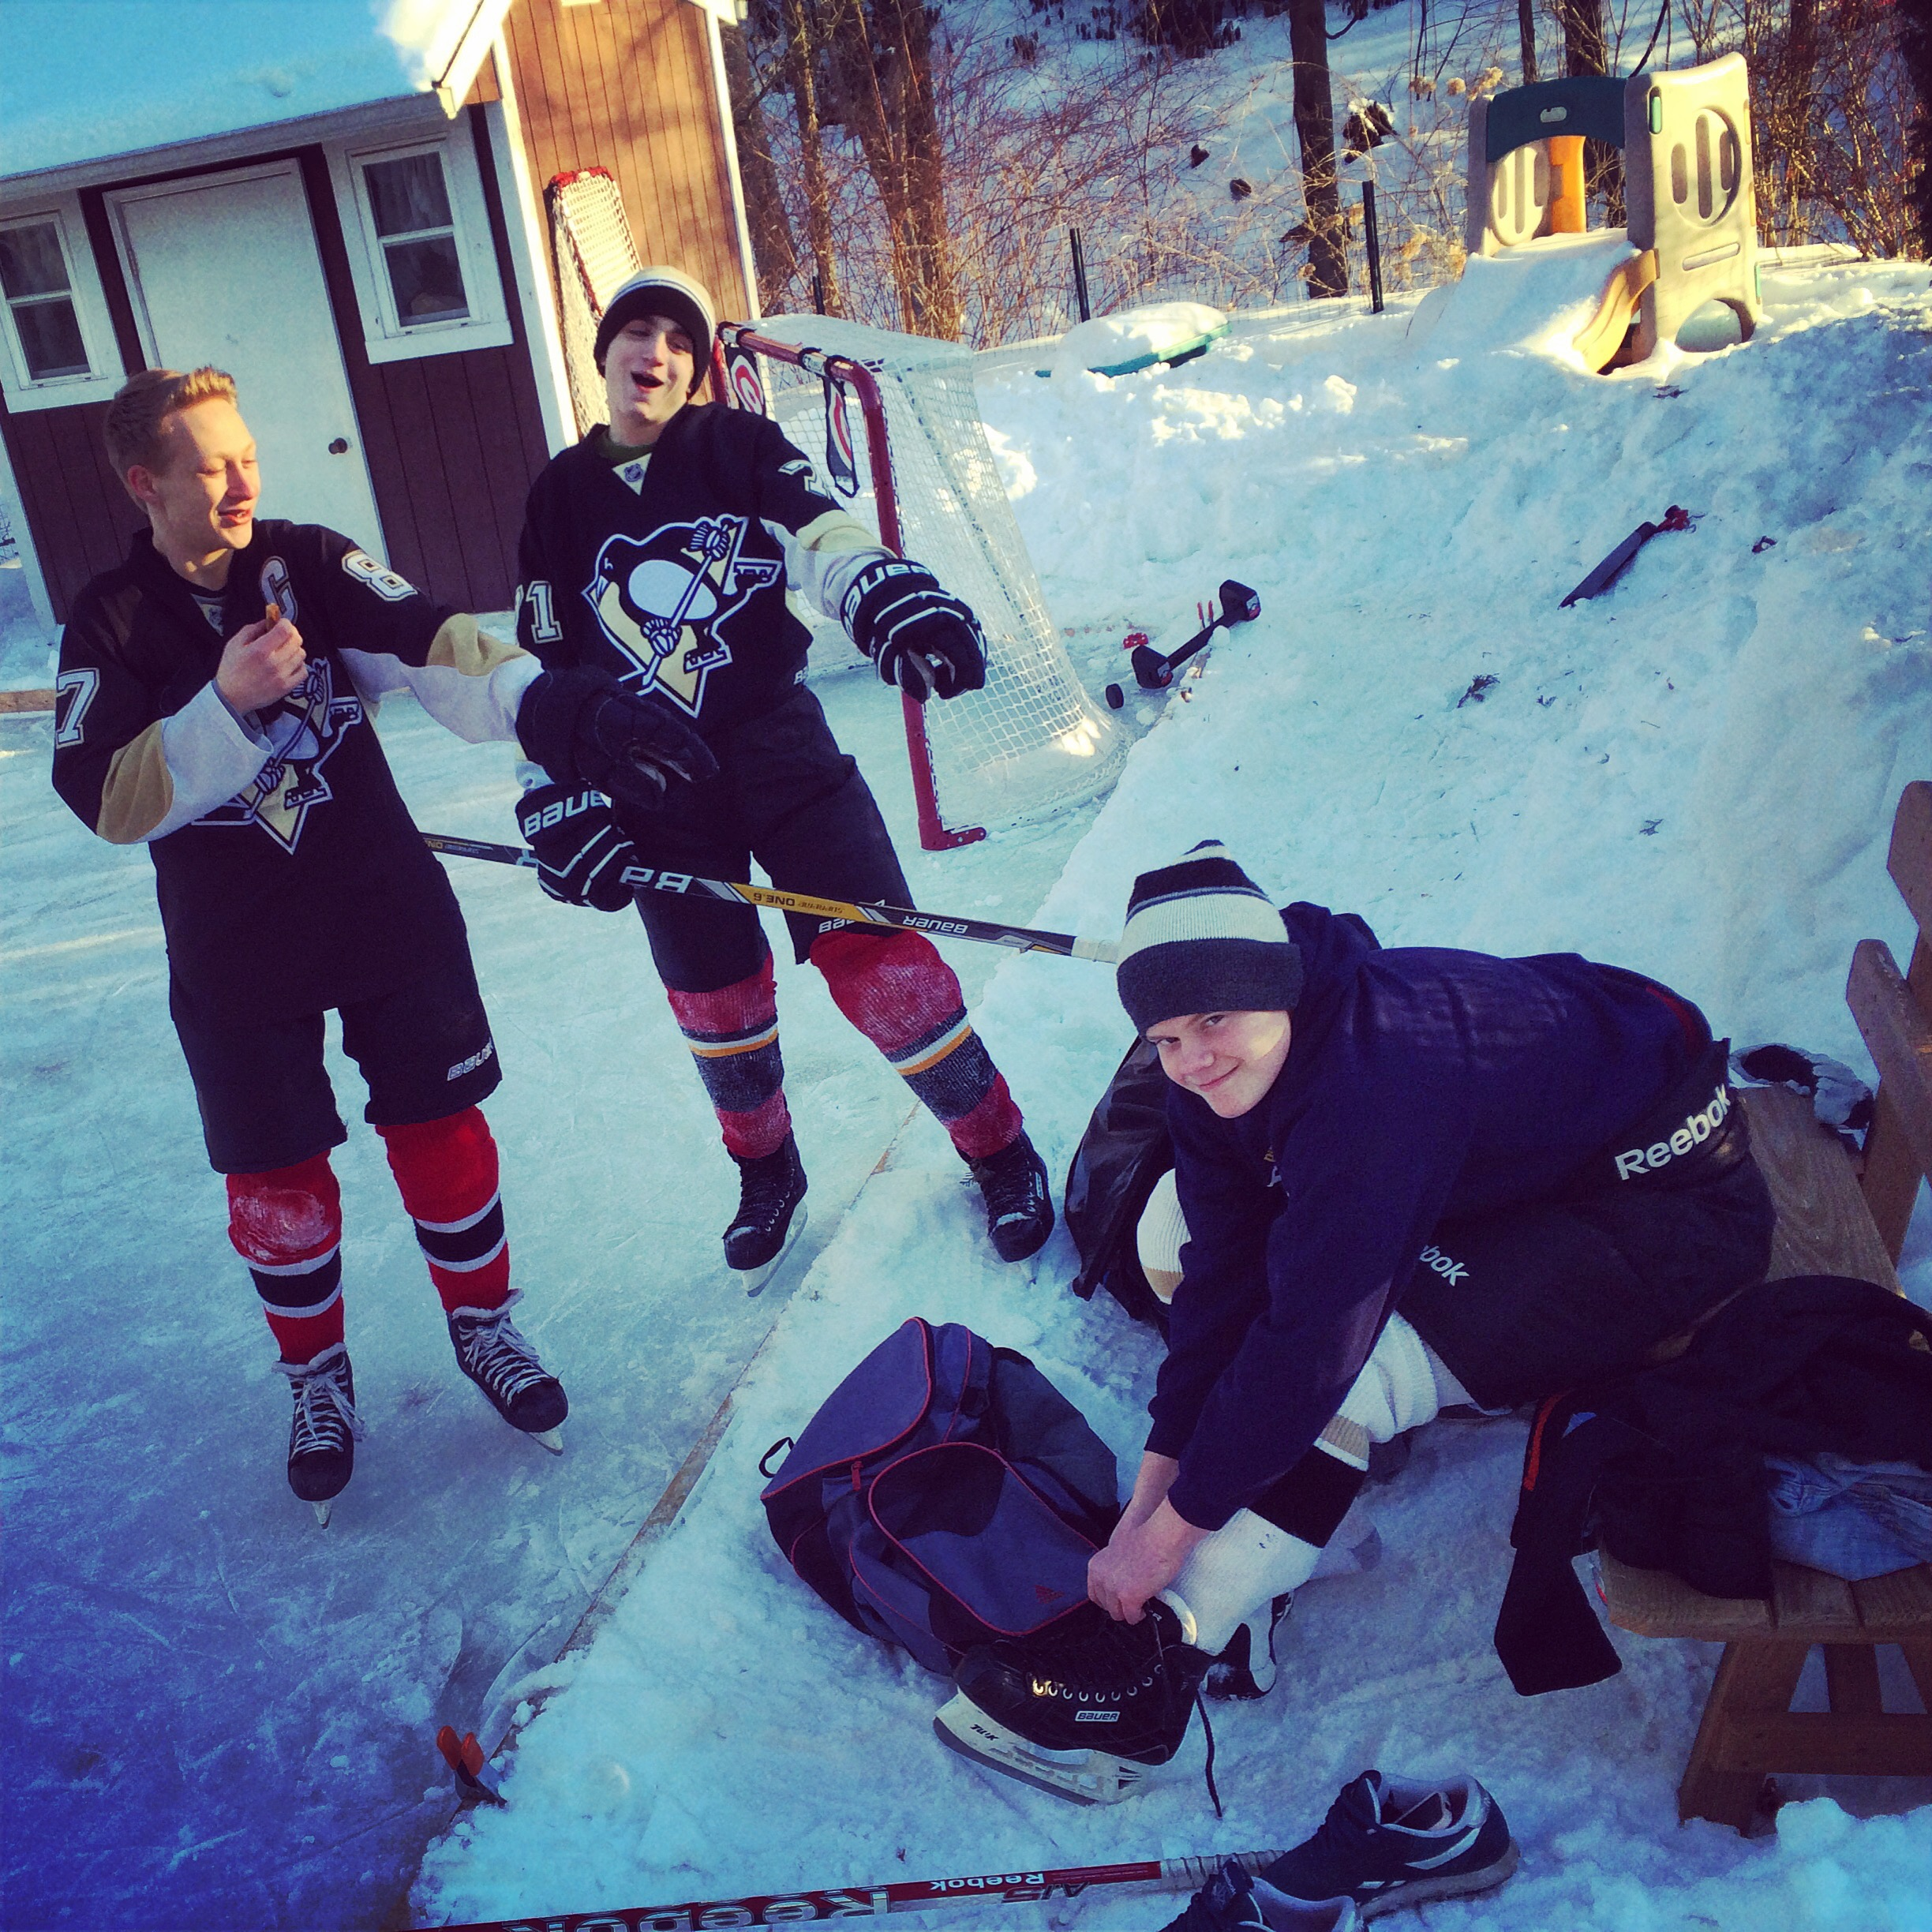 A few of my jr. high hockey players getting ready to play out back.